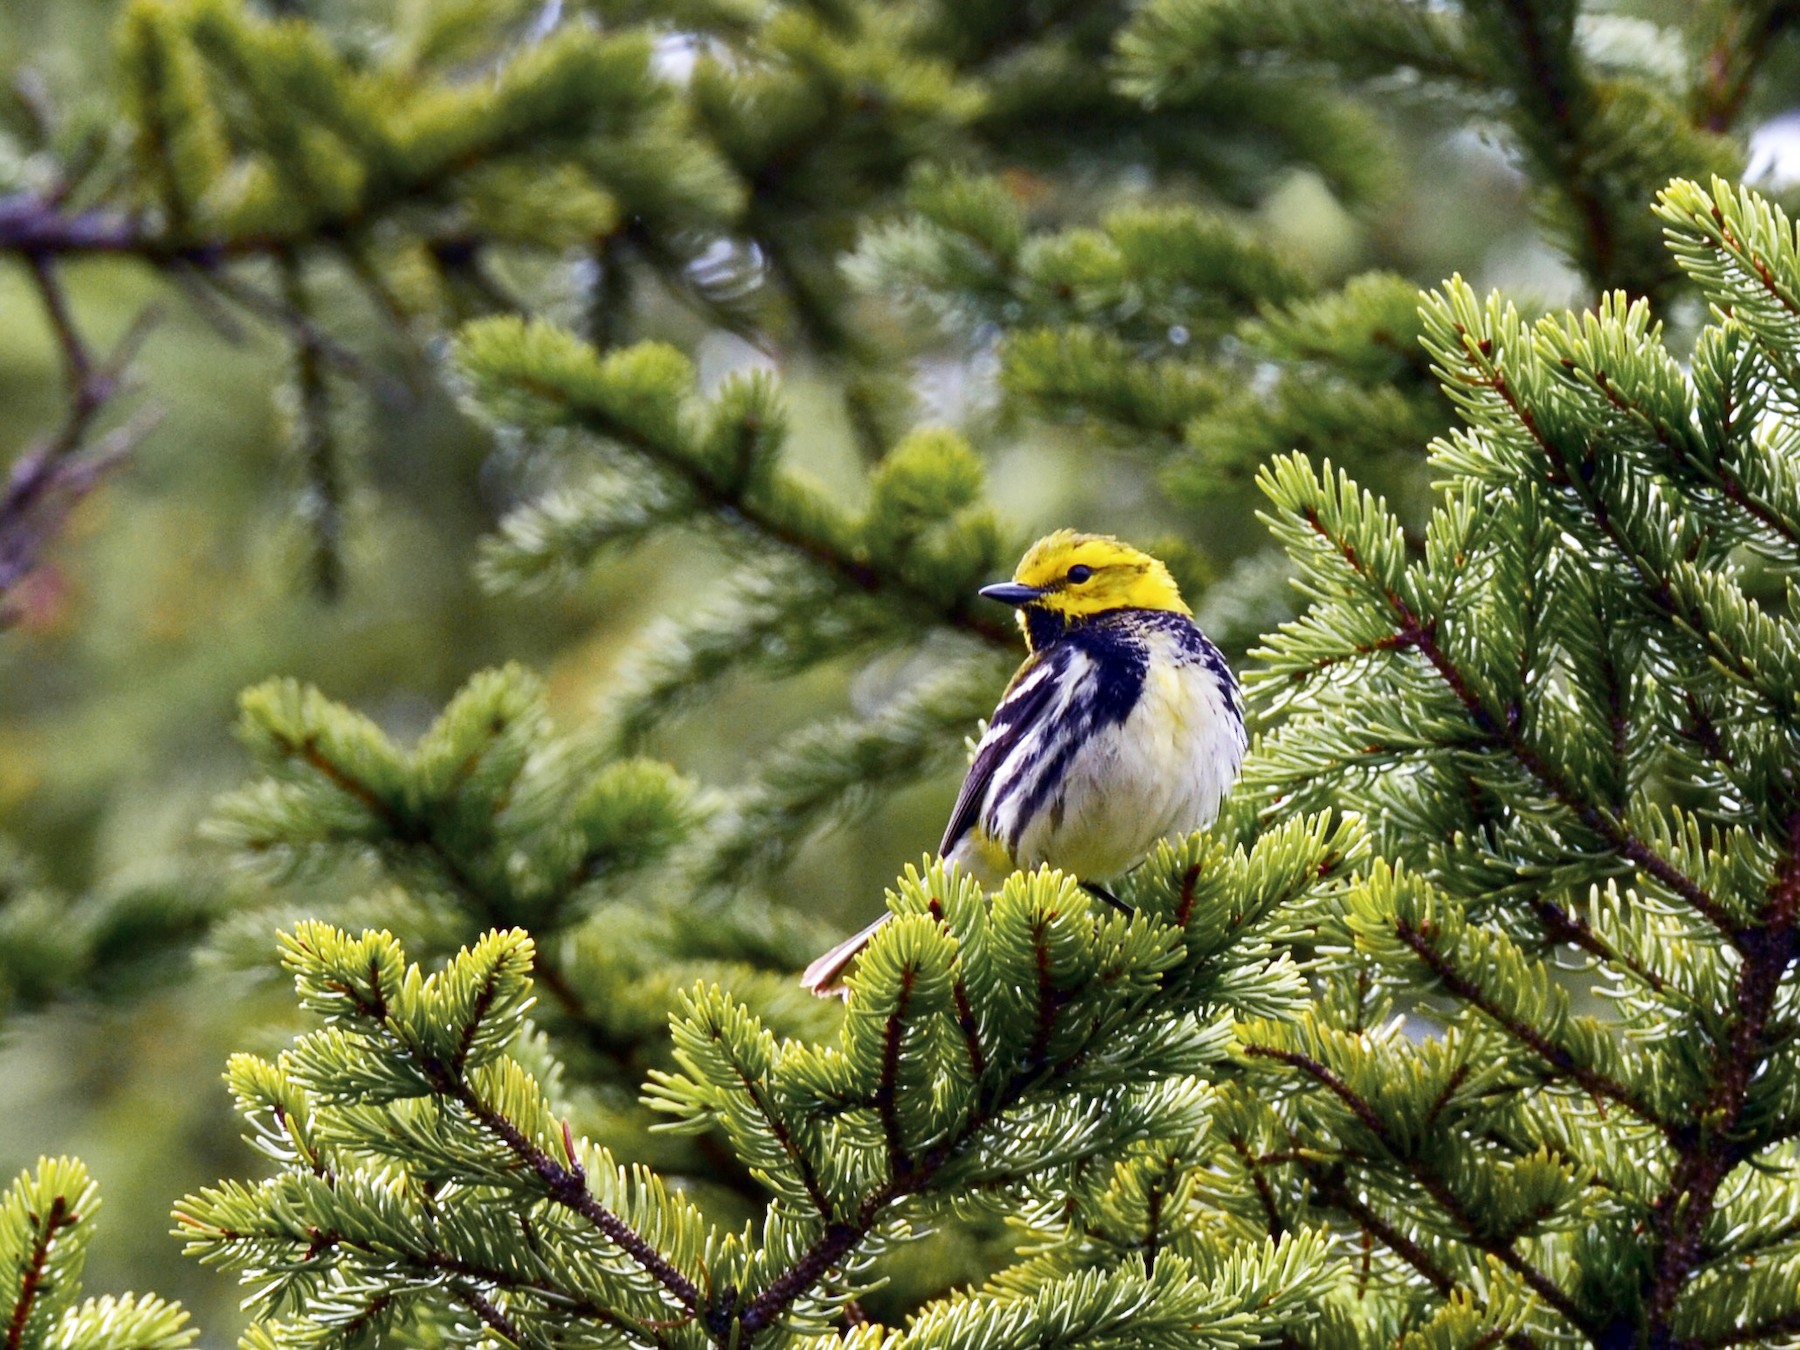 Black-throated Green Warbler - Epi Shemming